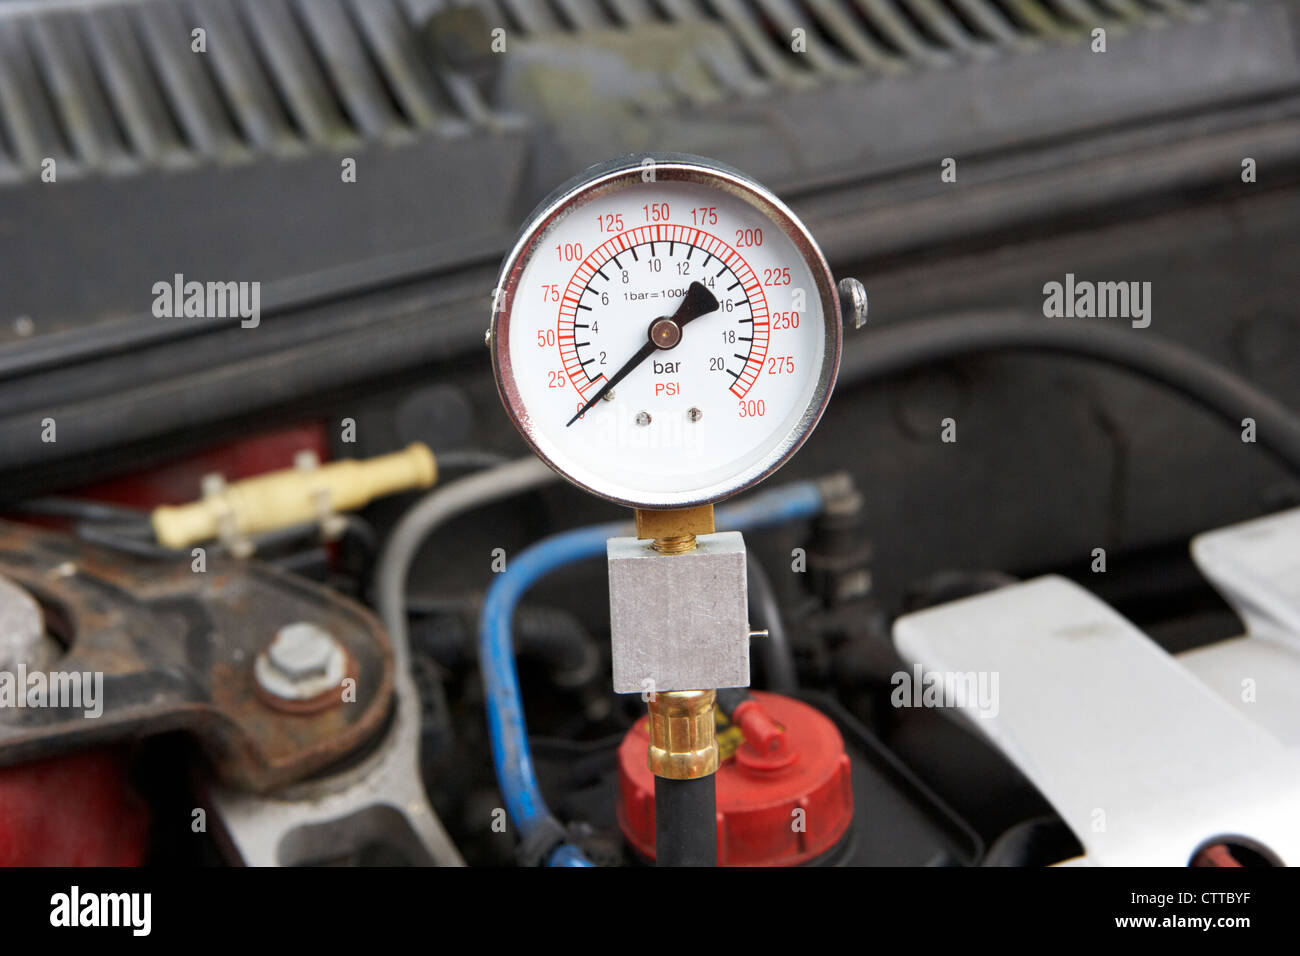 using a compression tester to measure the compression on a car engine cylinder showing zero reading - Stock Image